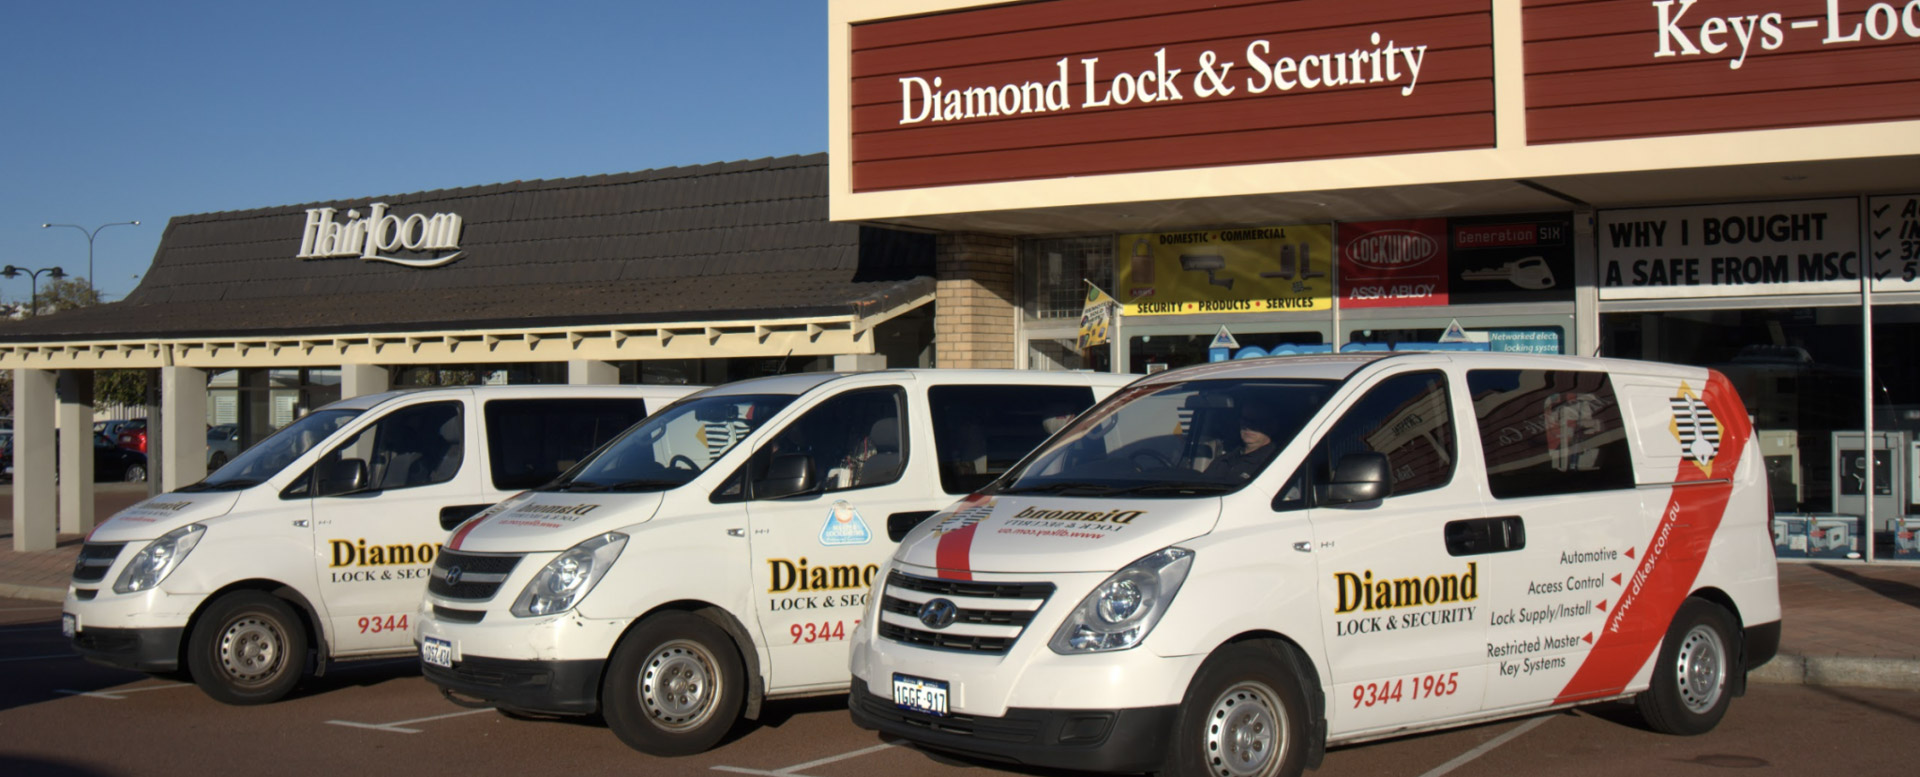 Diamond lock and security cars out the front of the venue.